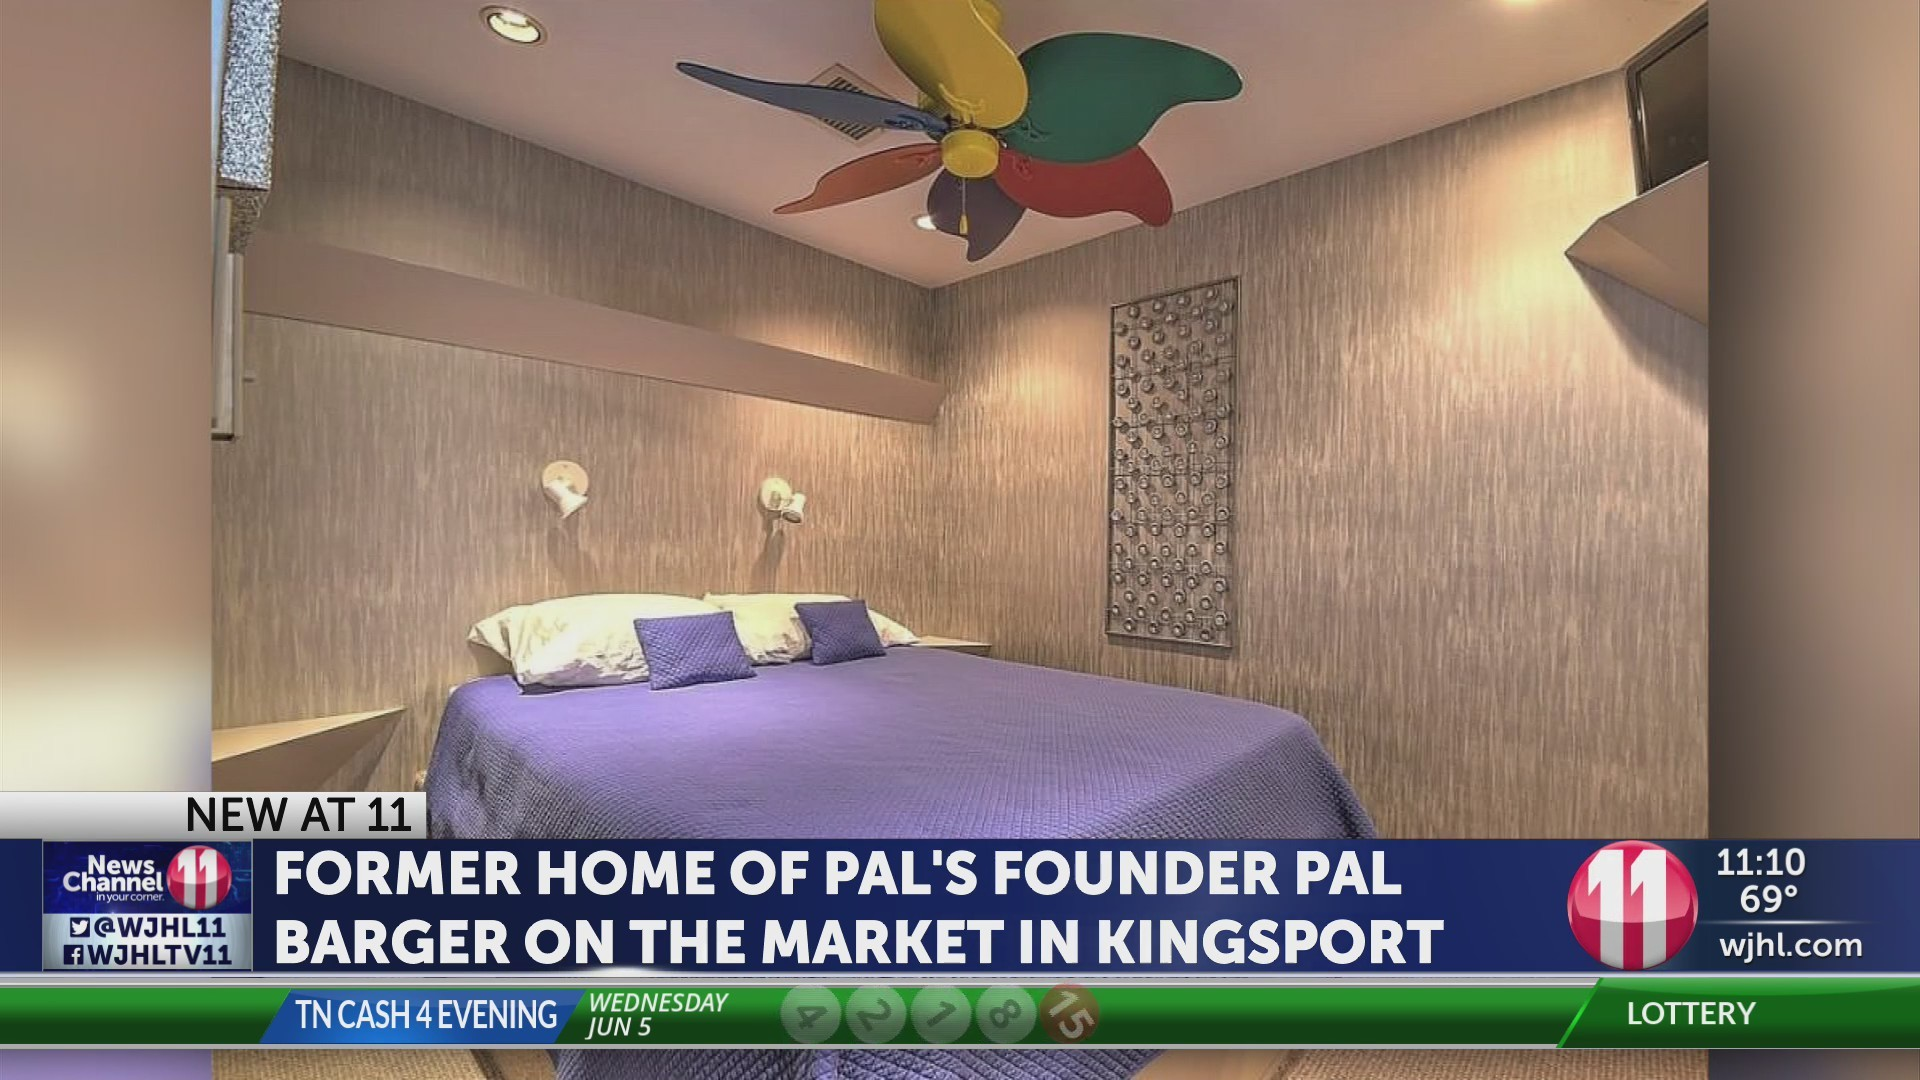 Home of Pal's founder for sale in Kingsport